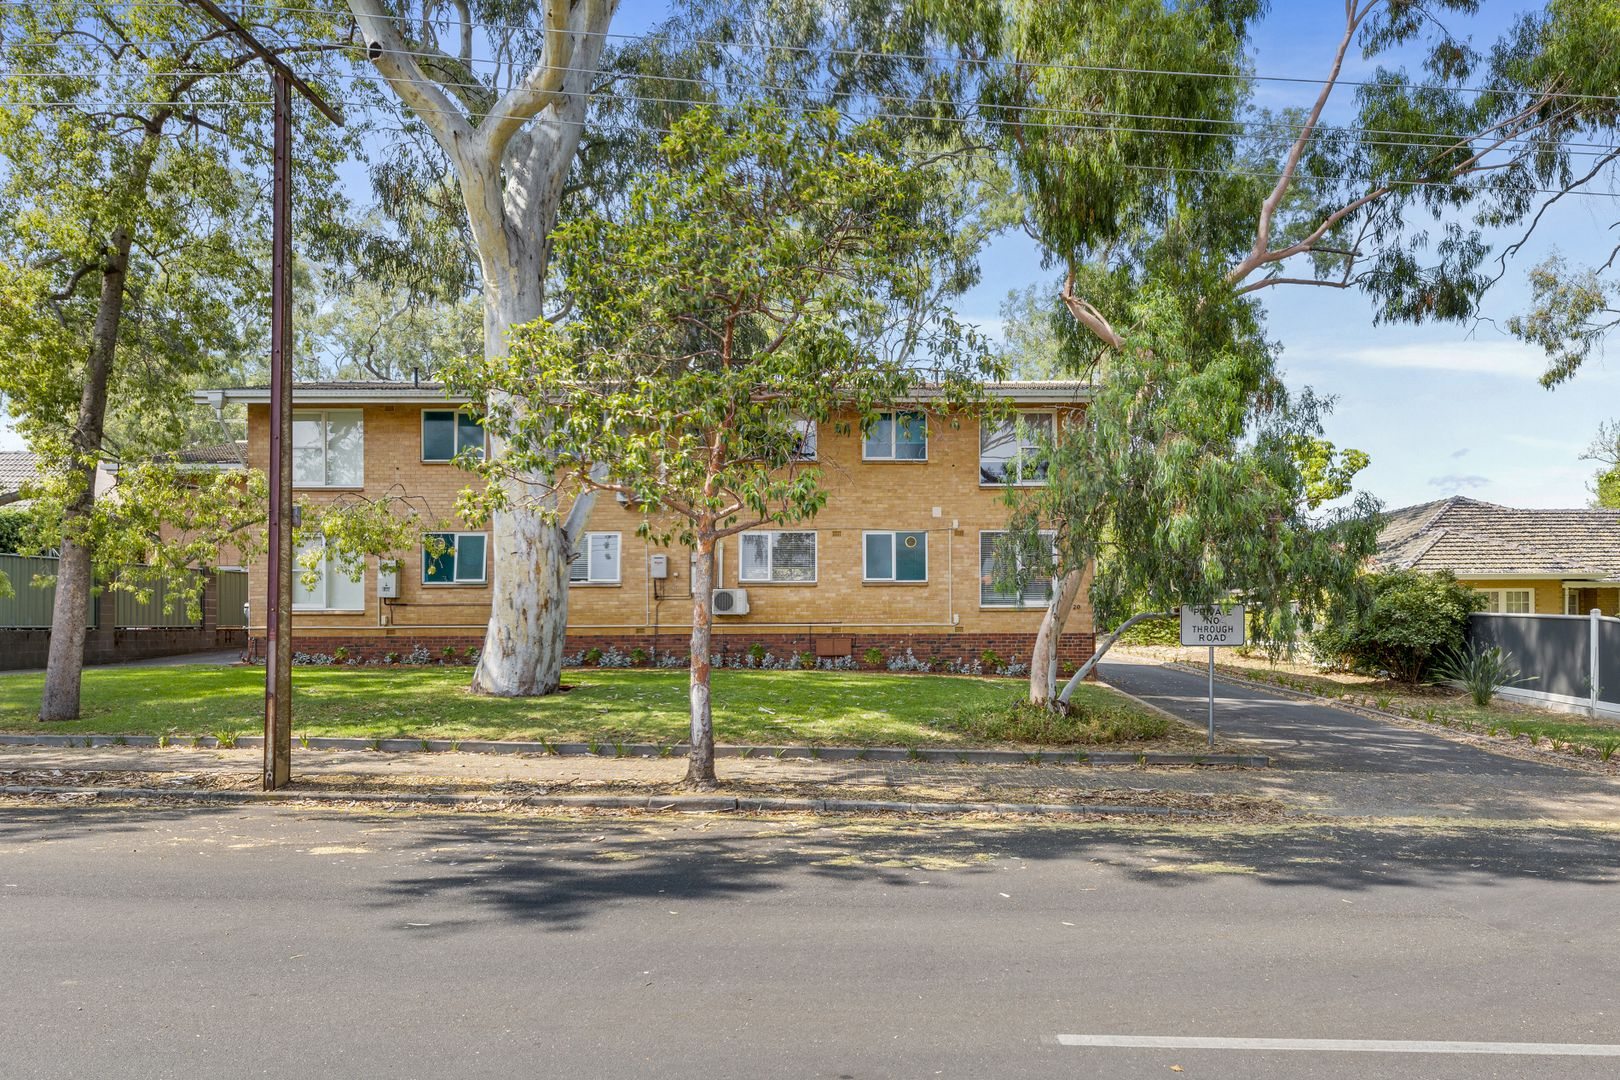 10/20 Statenborough Street, Leabrook SA 5068, Image 1